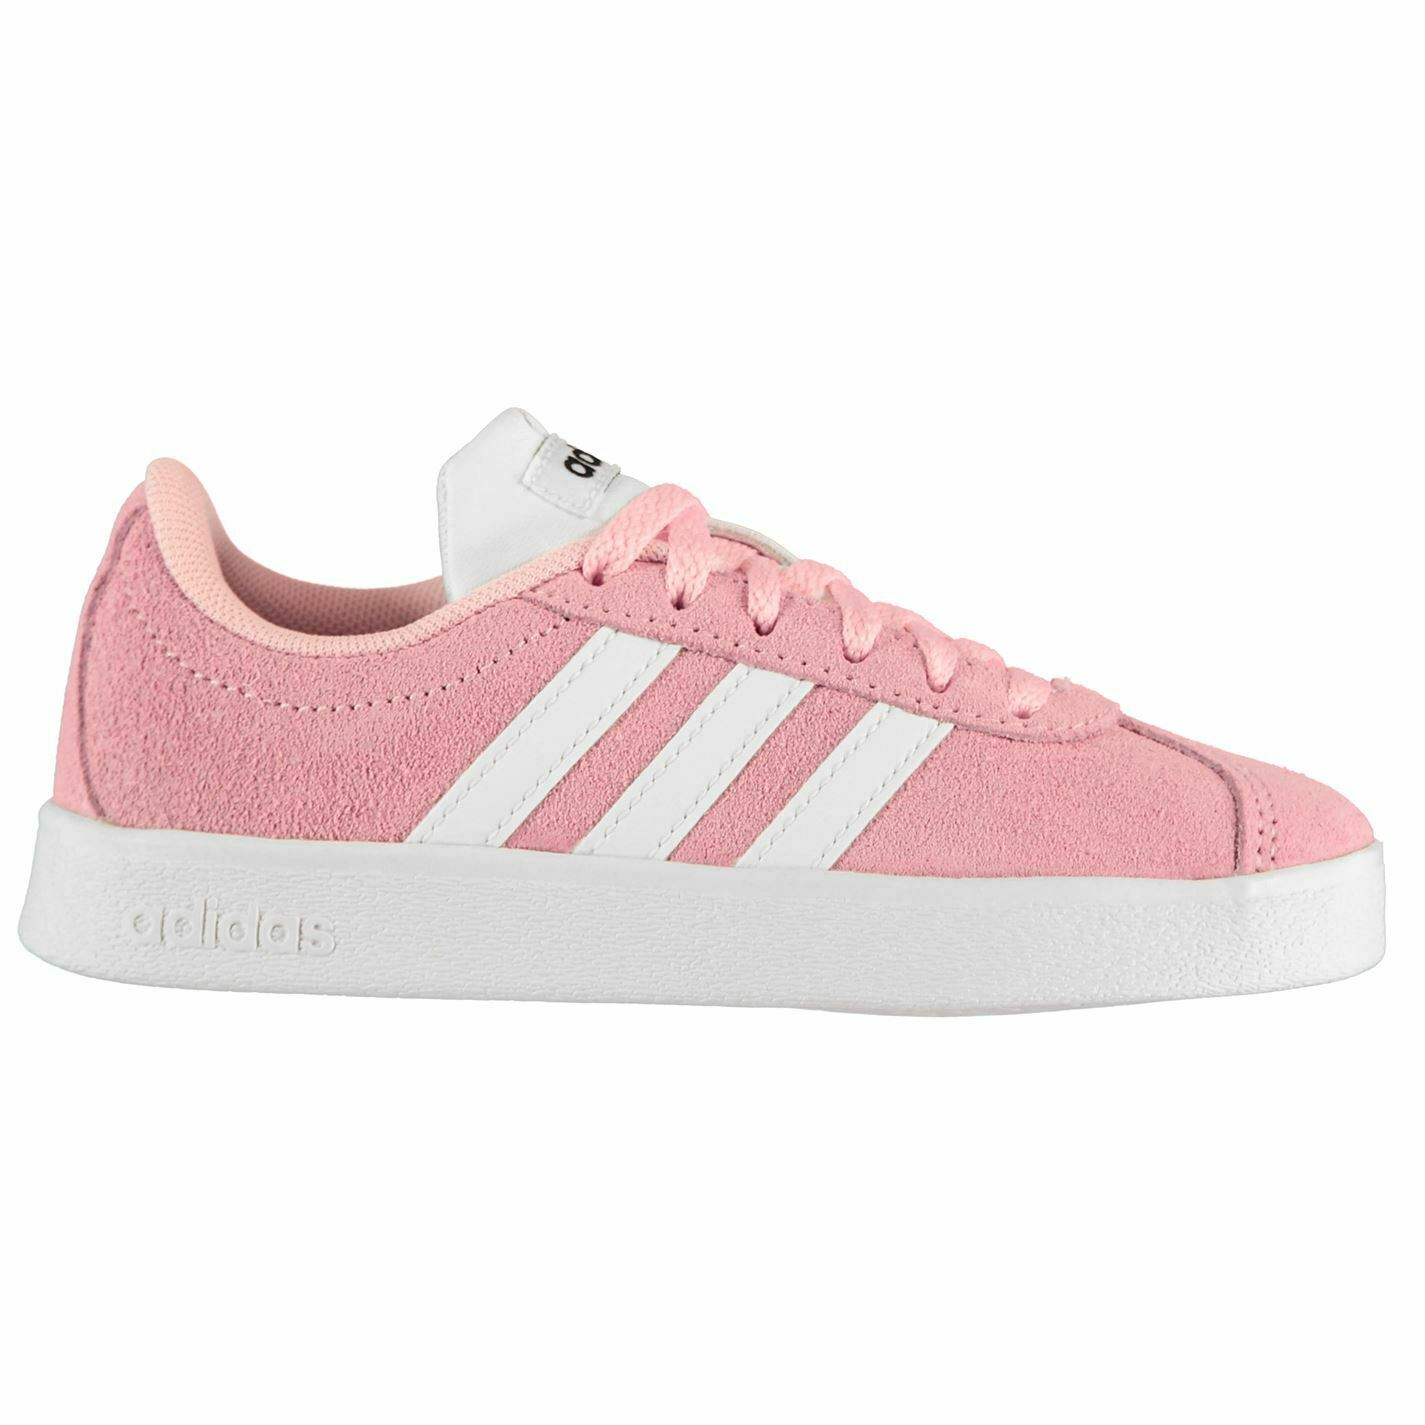 Adidas Kids VL Court  Suede Lace Up Running Sports shoes Trainers Pumps Sneakers  just buy it